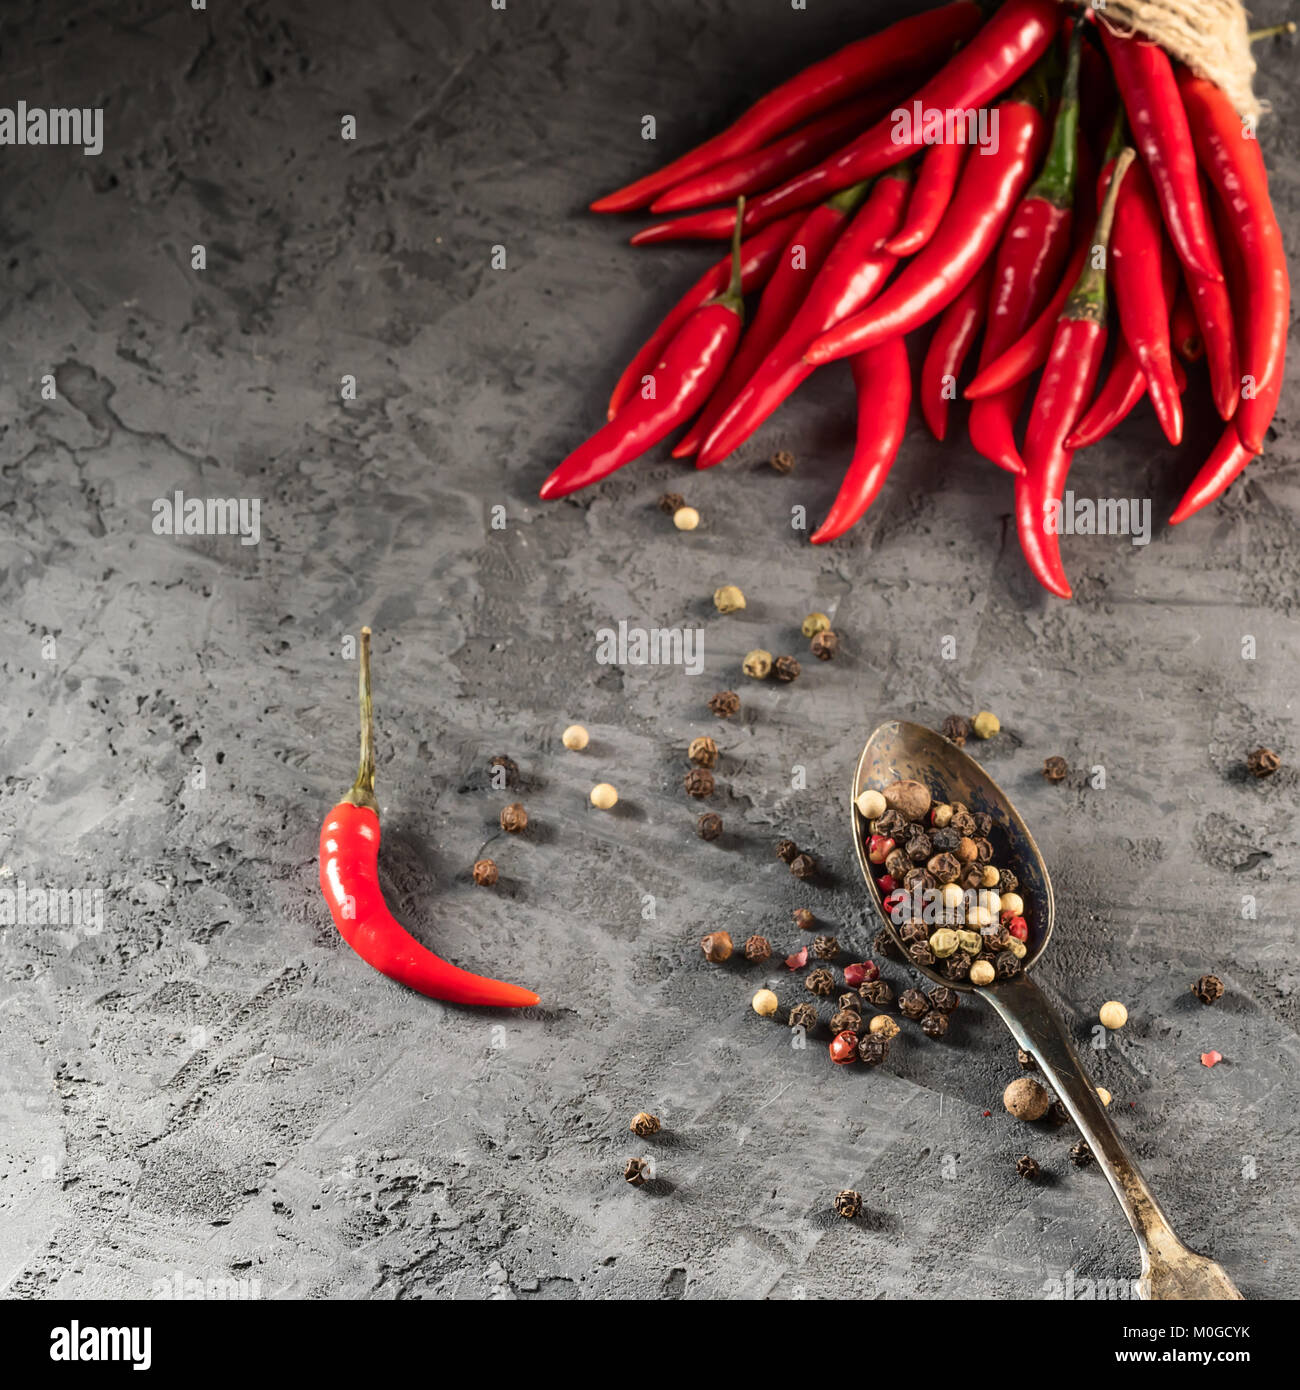 Red Hot Chili Peppers et paprika en boule de graines sur table en pierre ingrédient pour la cuisine mexicaine, Photo Stock